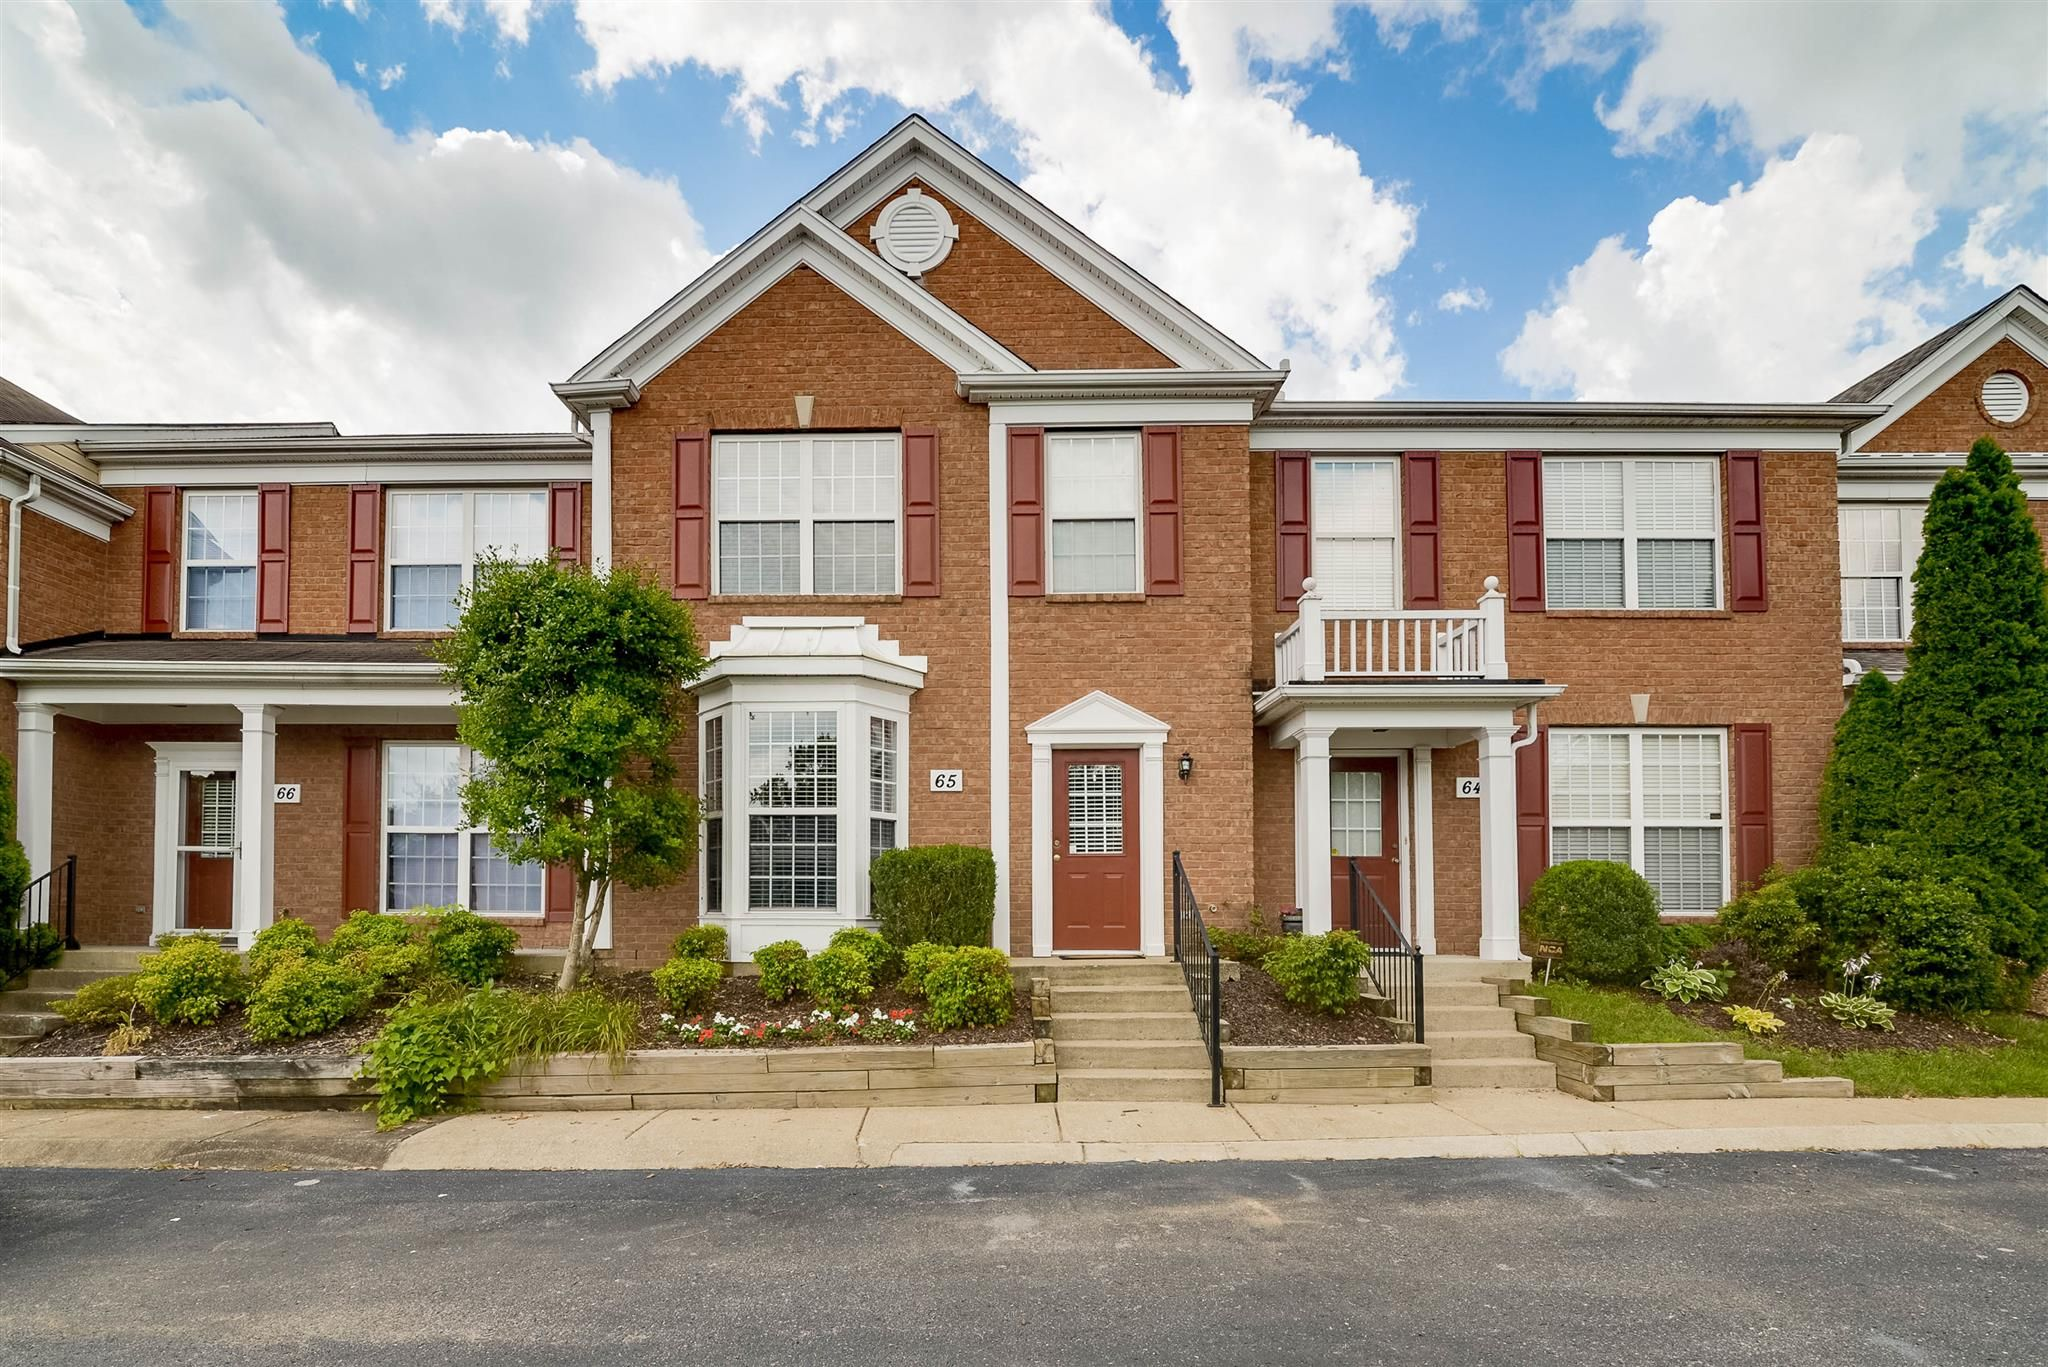 Townhomes of Fredericksburg for Sale Brentwood TN